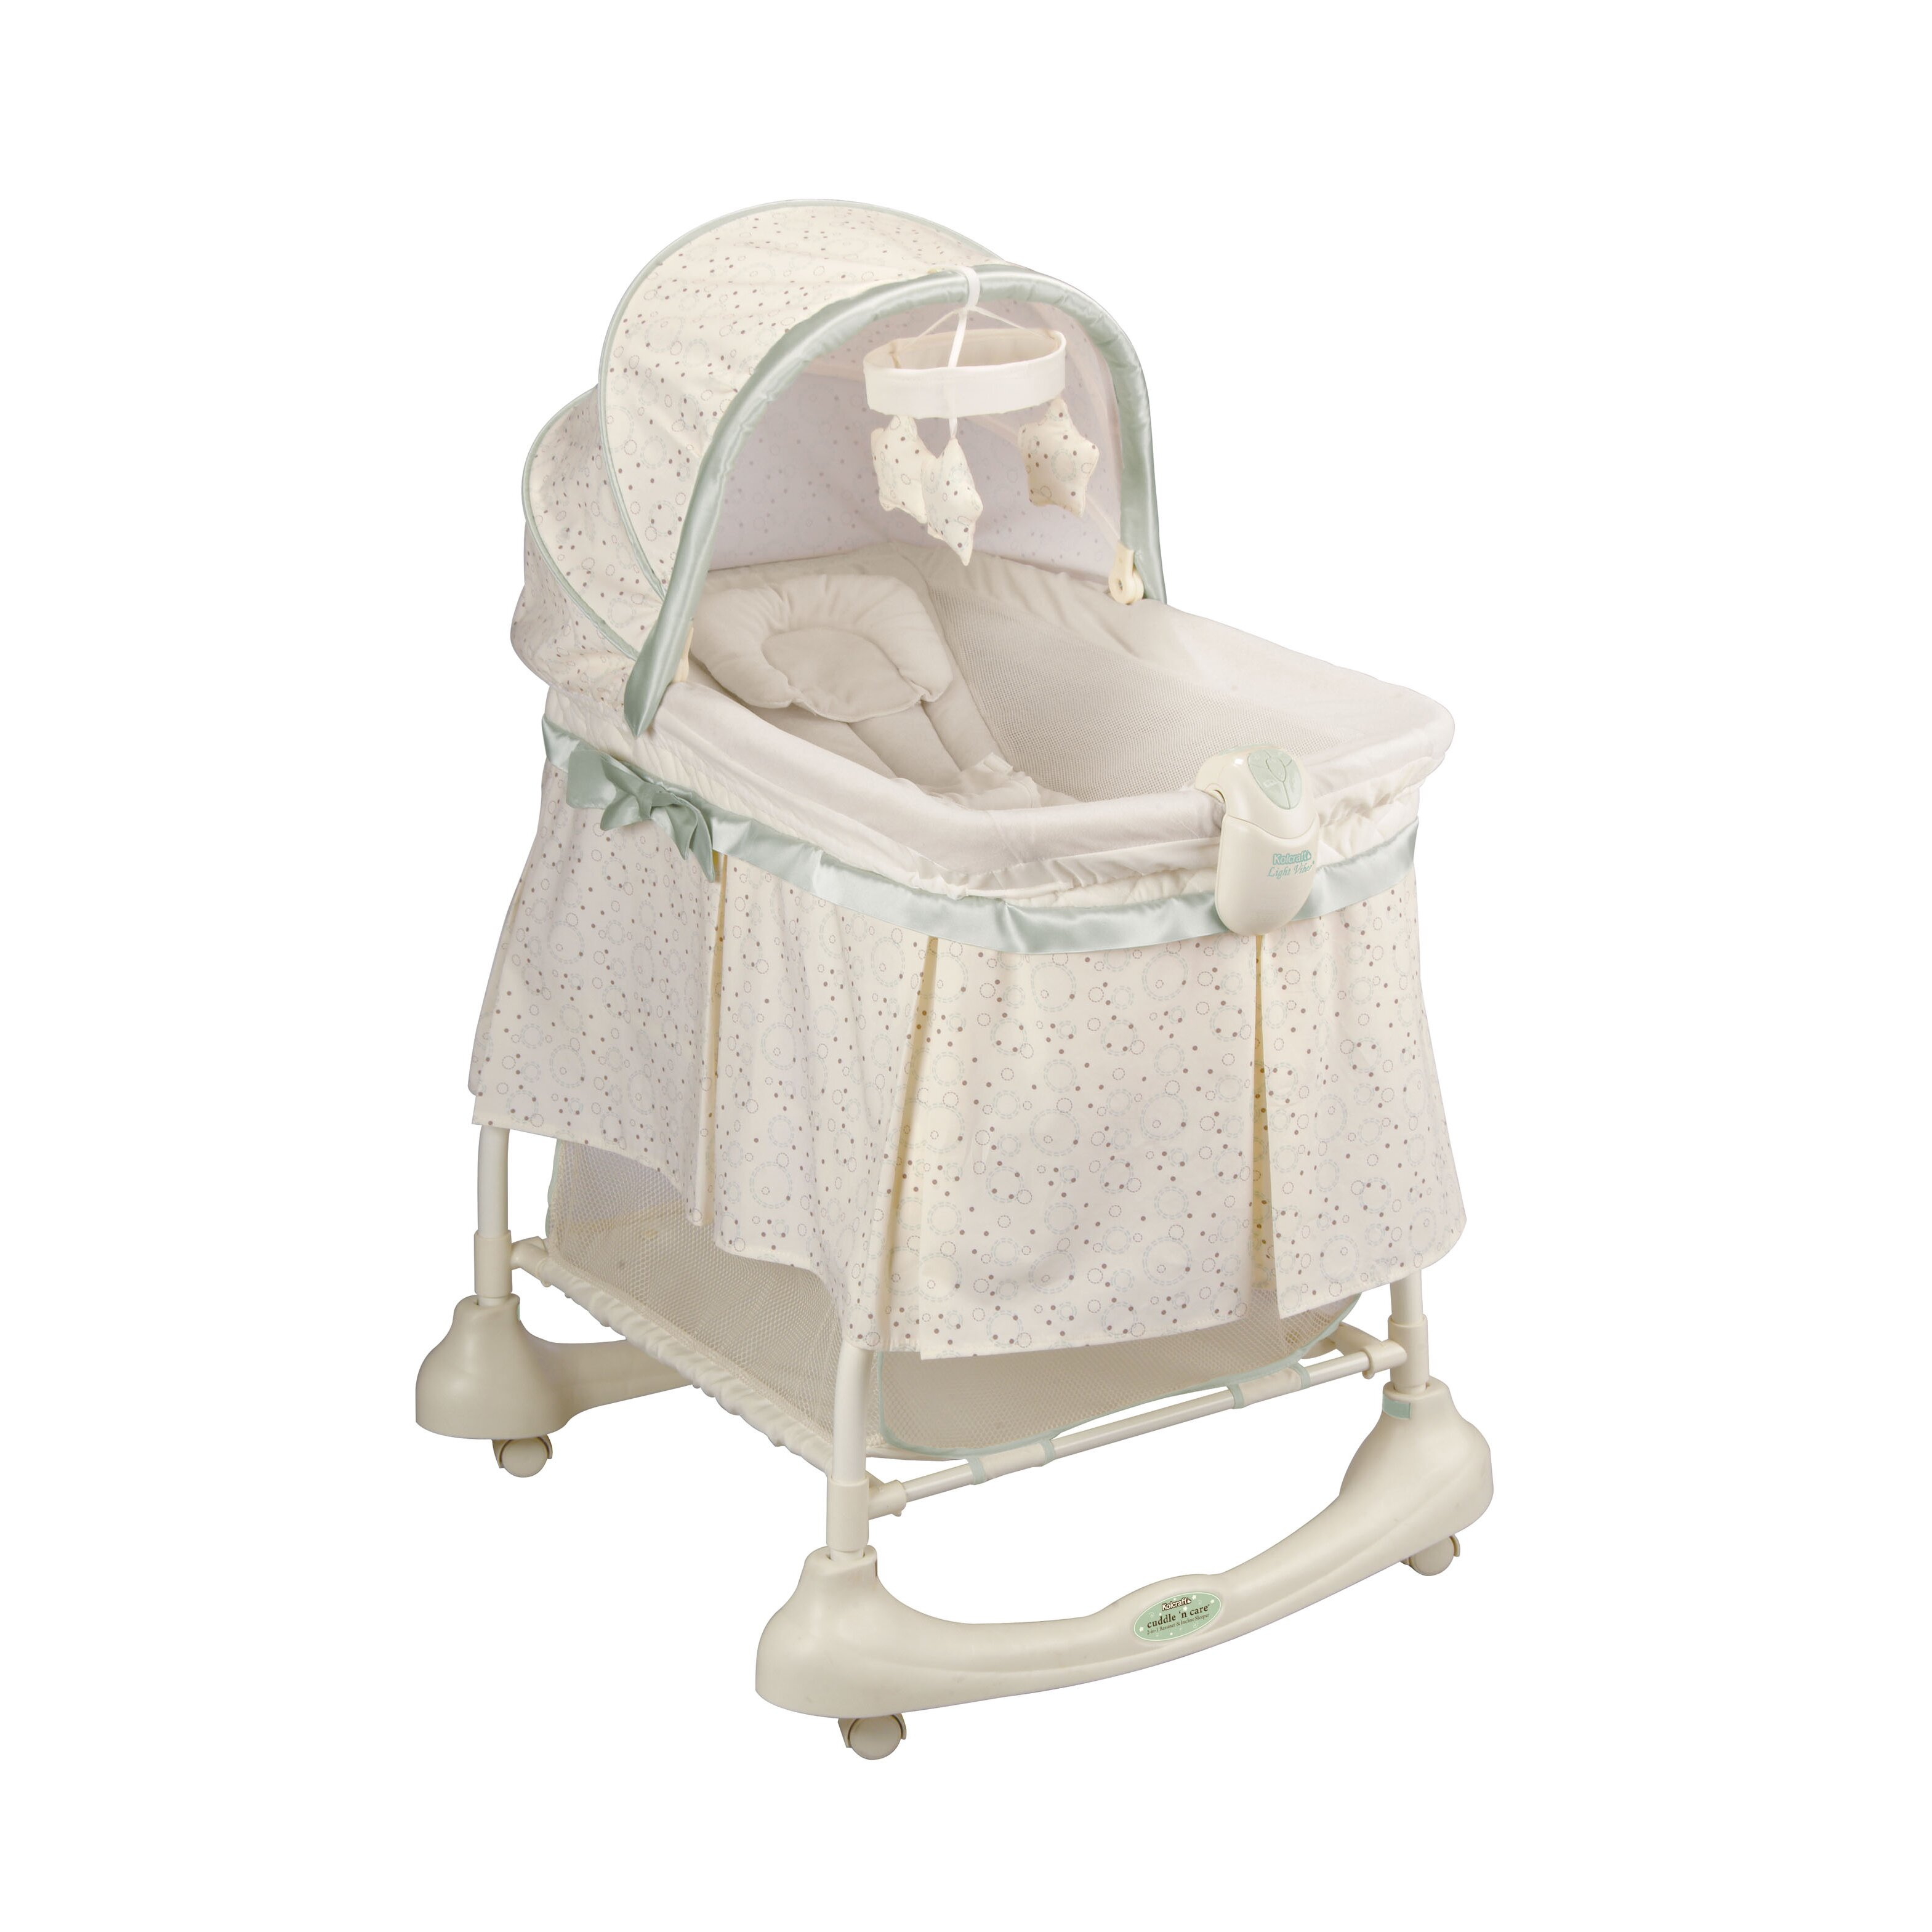 Kolcraft Cuddle N Care 2 In 1 Bassinet And Incline